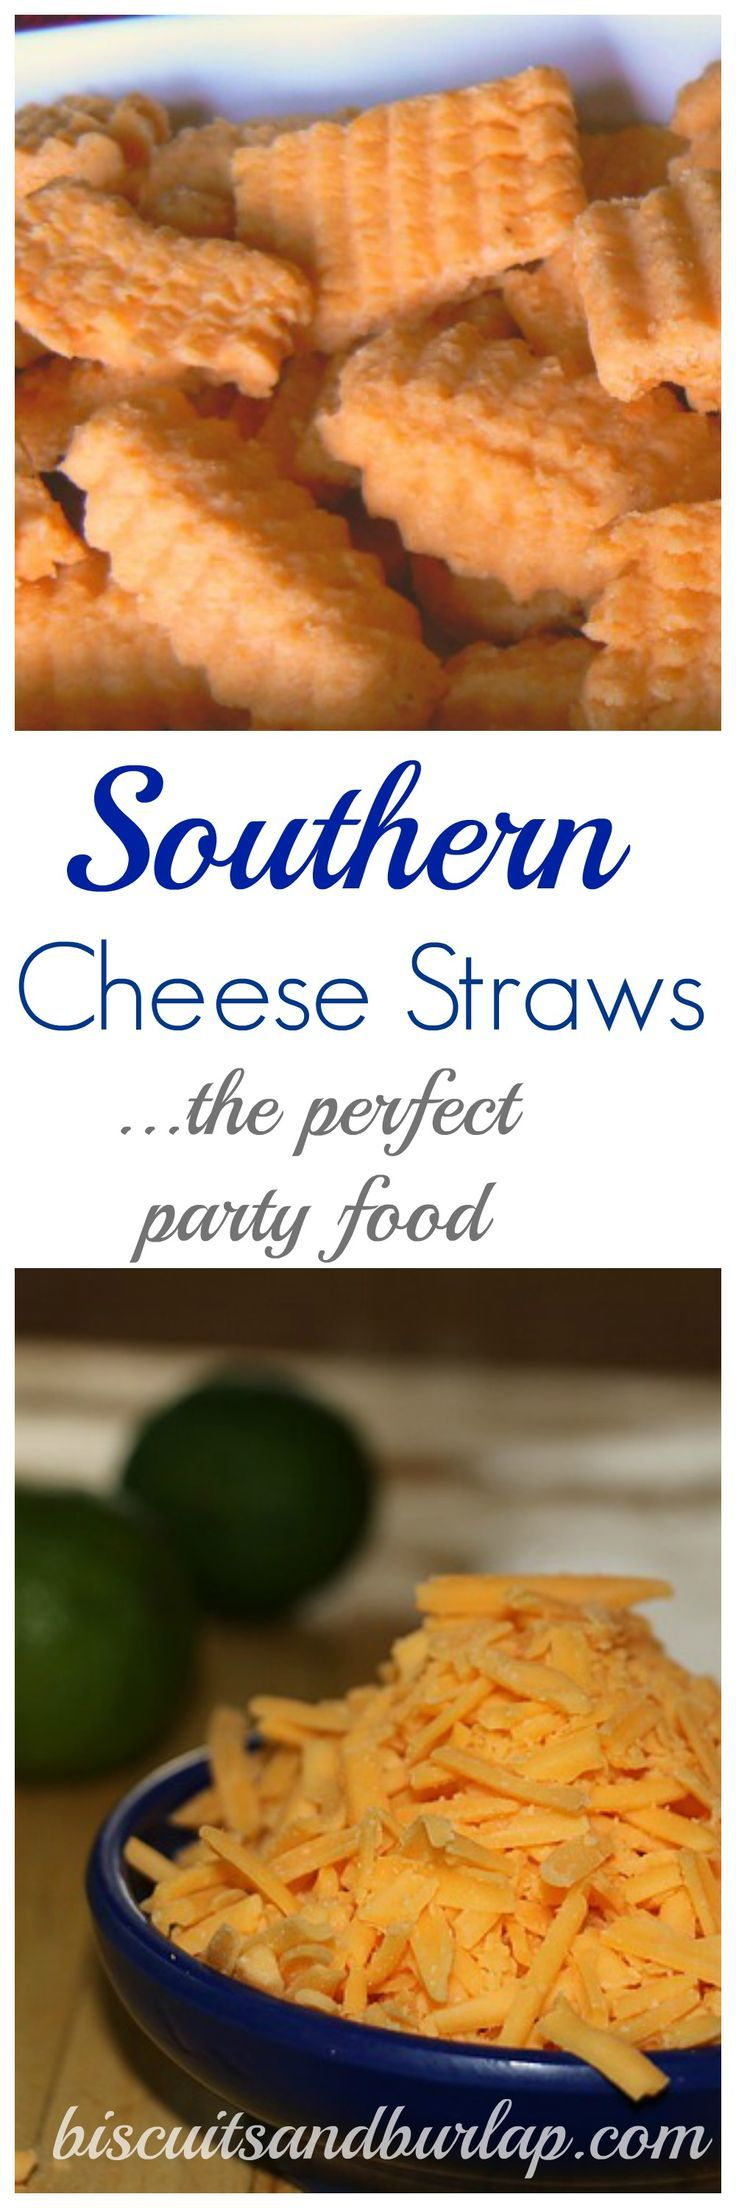 Photo of Southern Cheese Straws